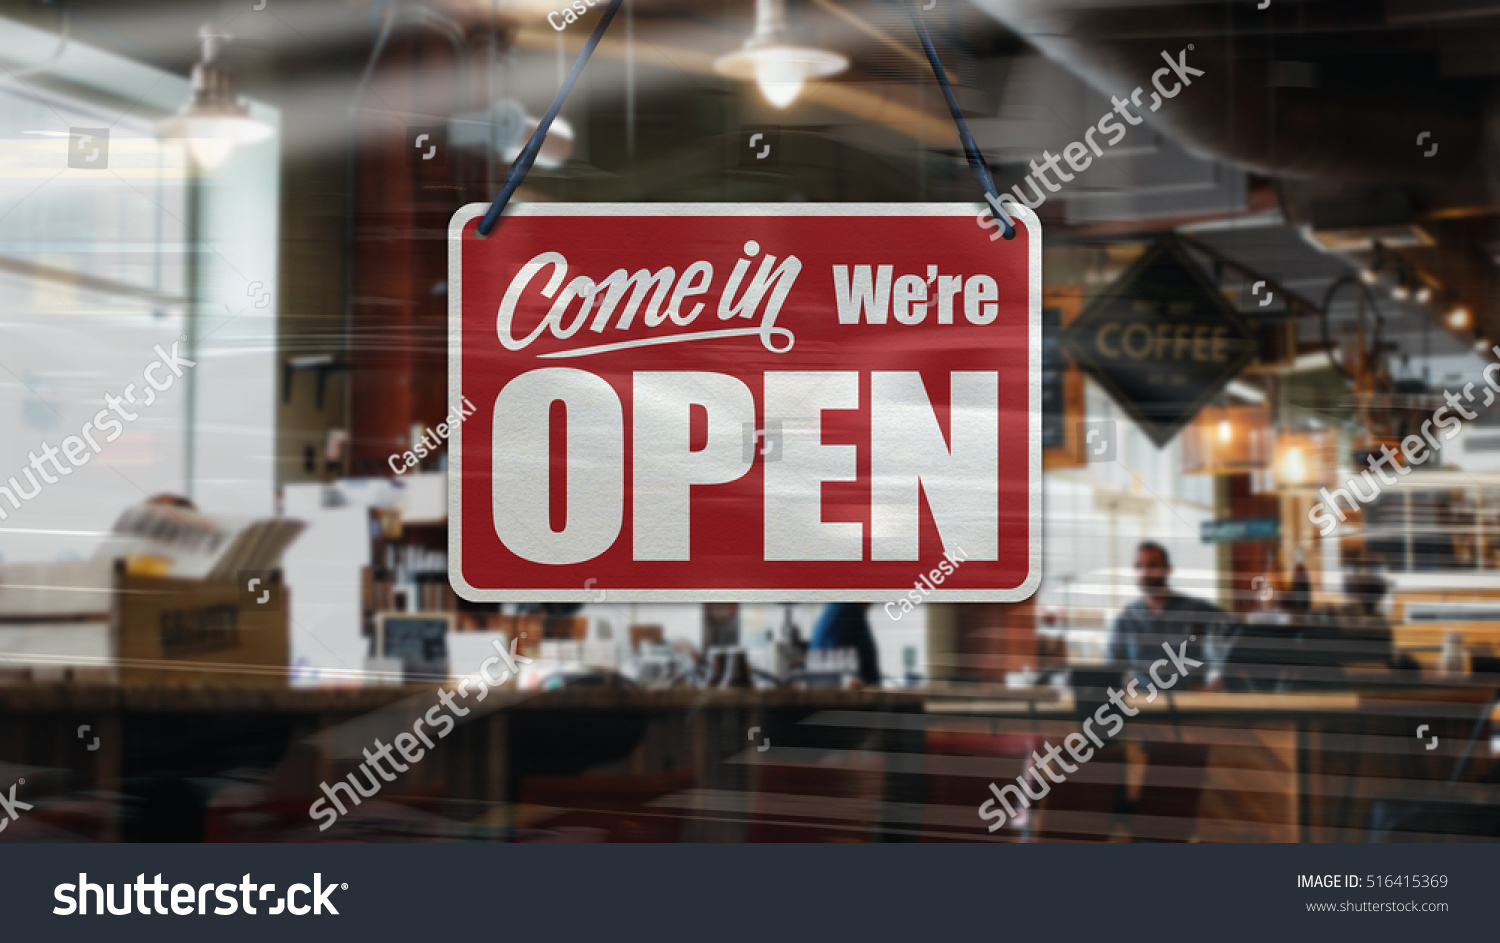 A business sign that says 'Come in We're Open' on Cafe / Restaurant window. #516415369